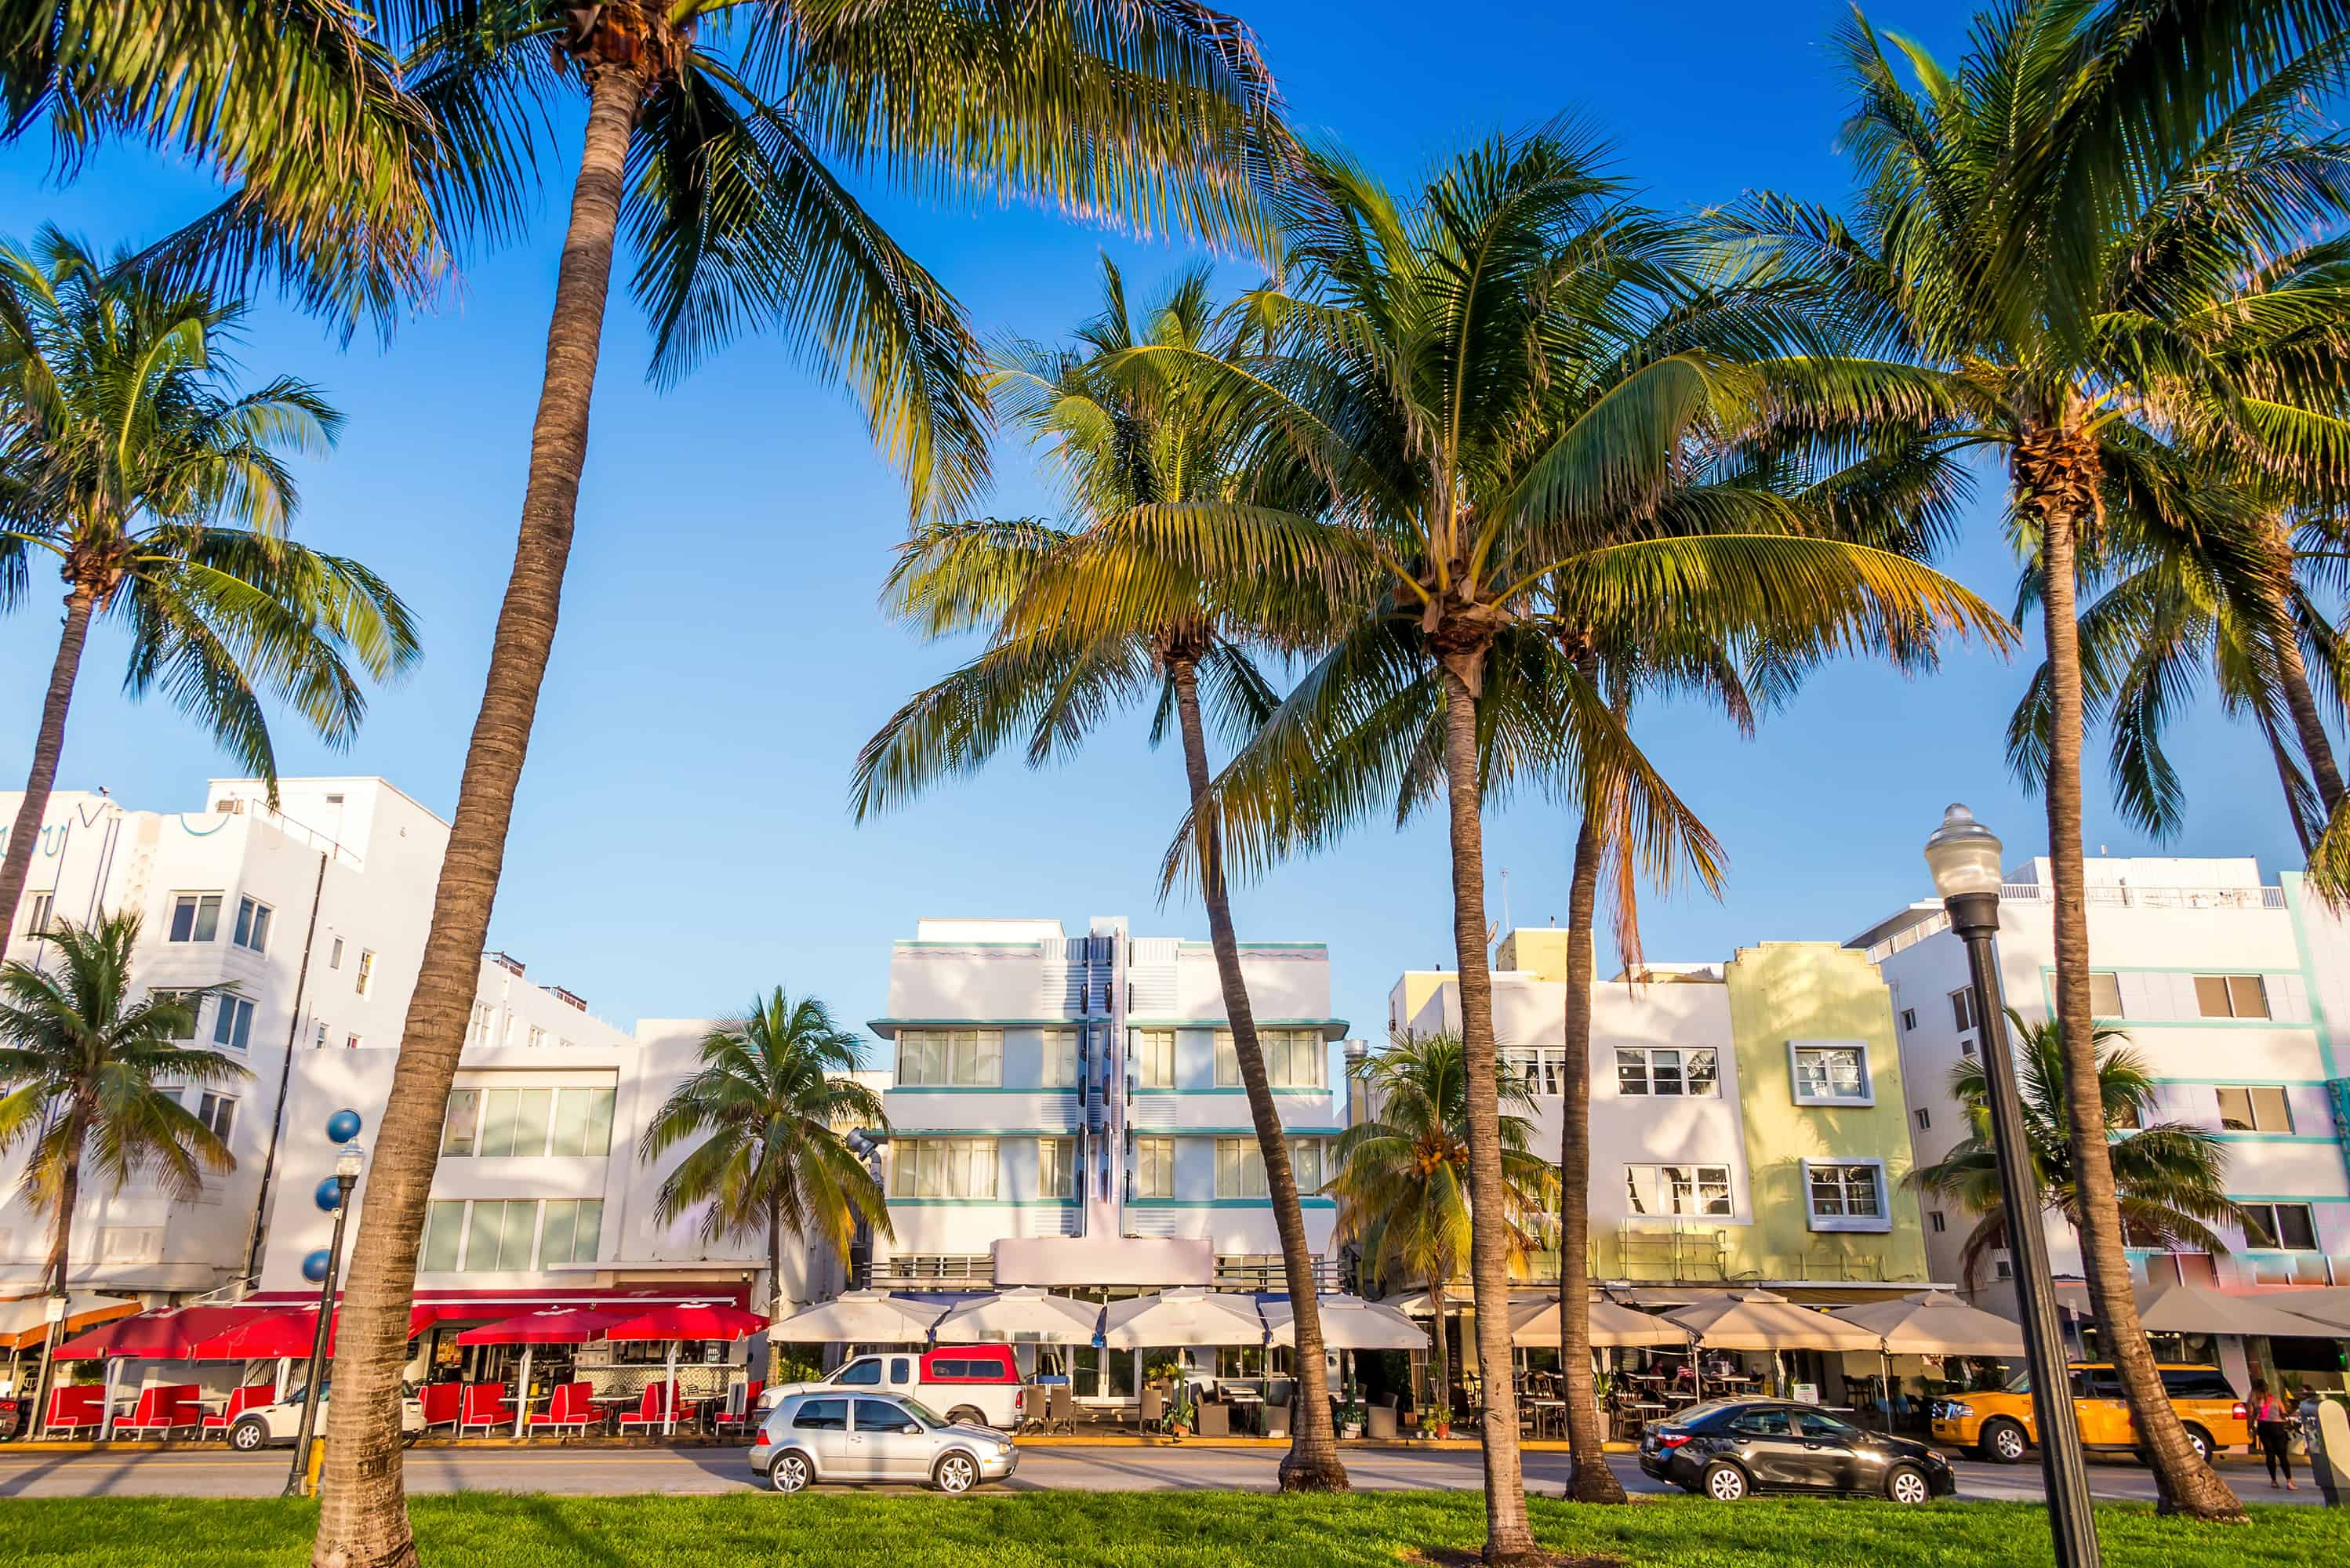 Sizzling Nightlife in Miami Beach